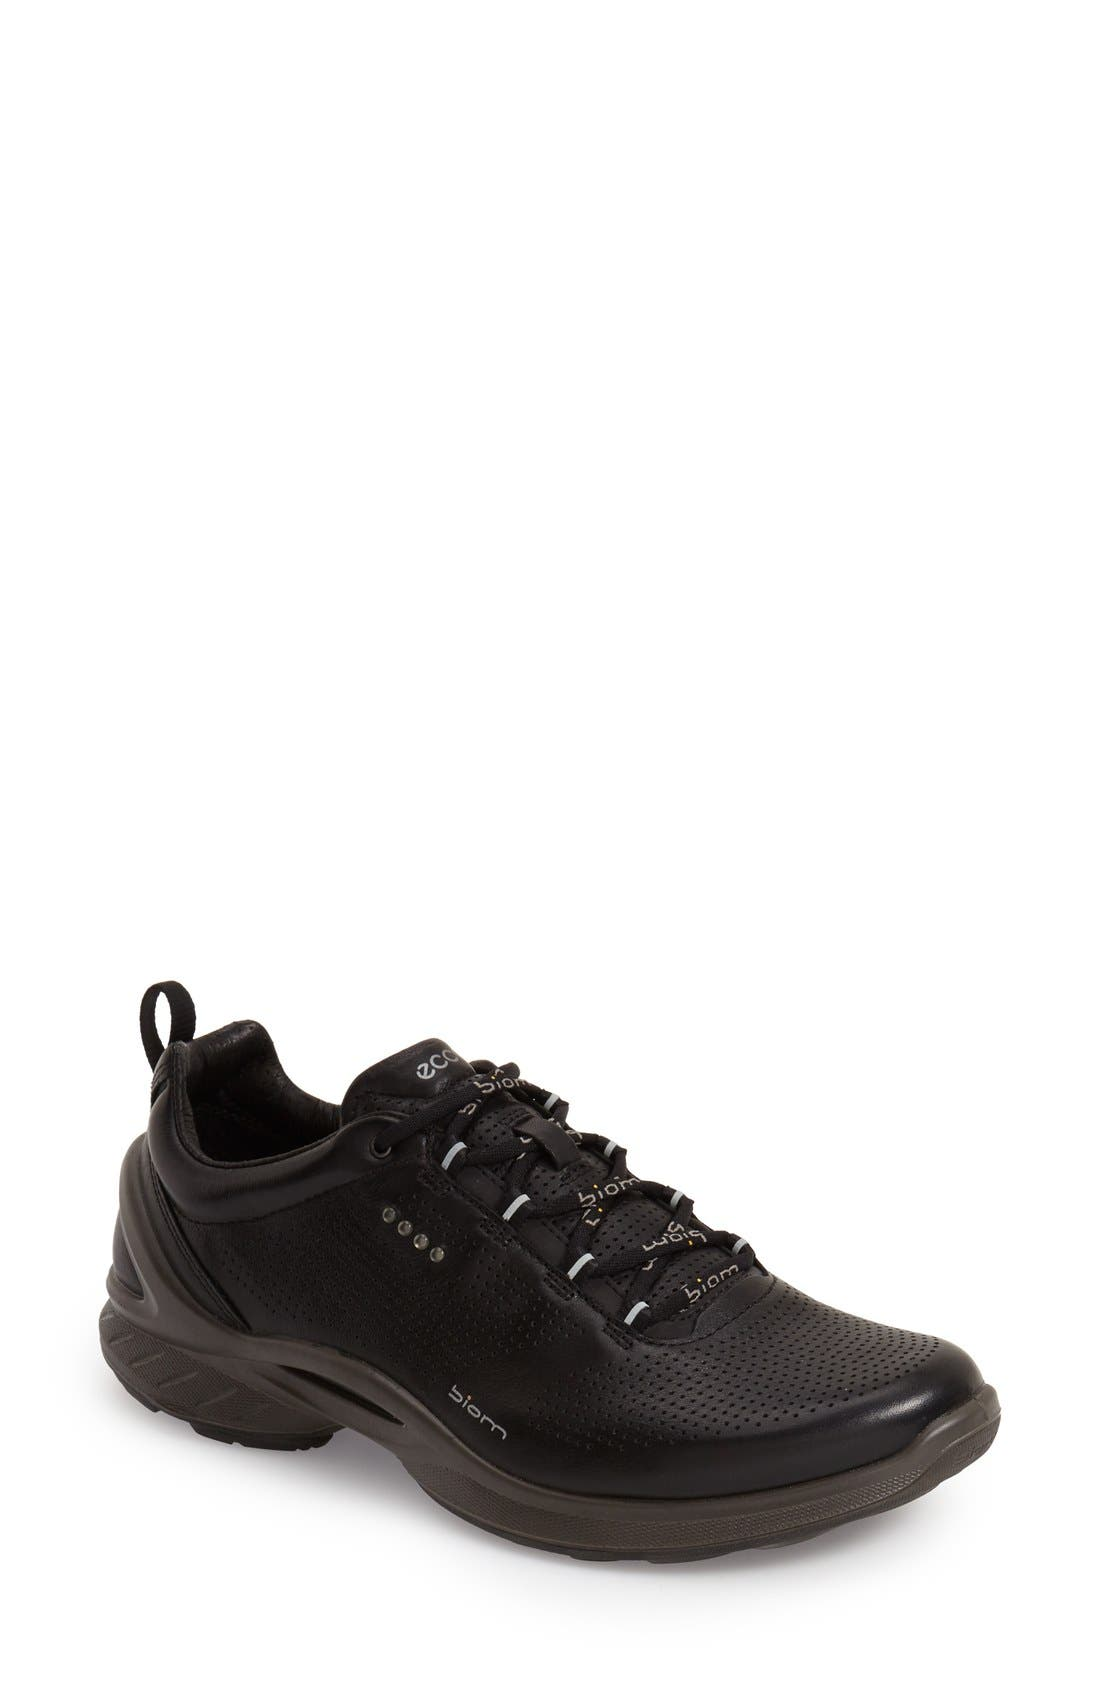 Alternate Image 1 Selected - ECCO 'Biom Fjuel' Sneaker (Women)